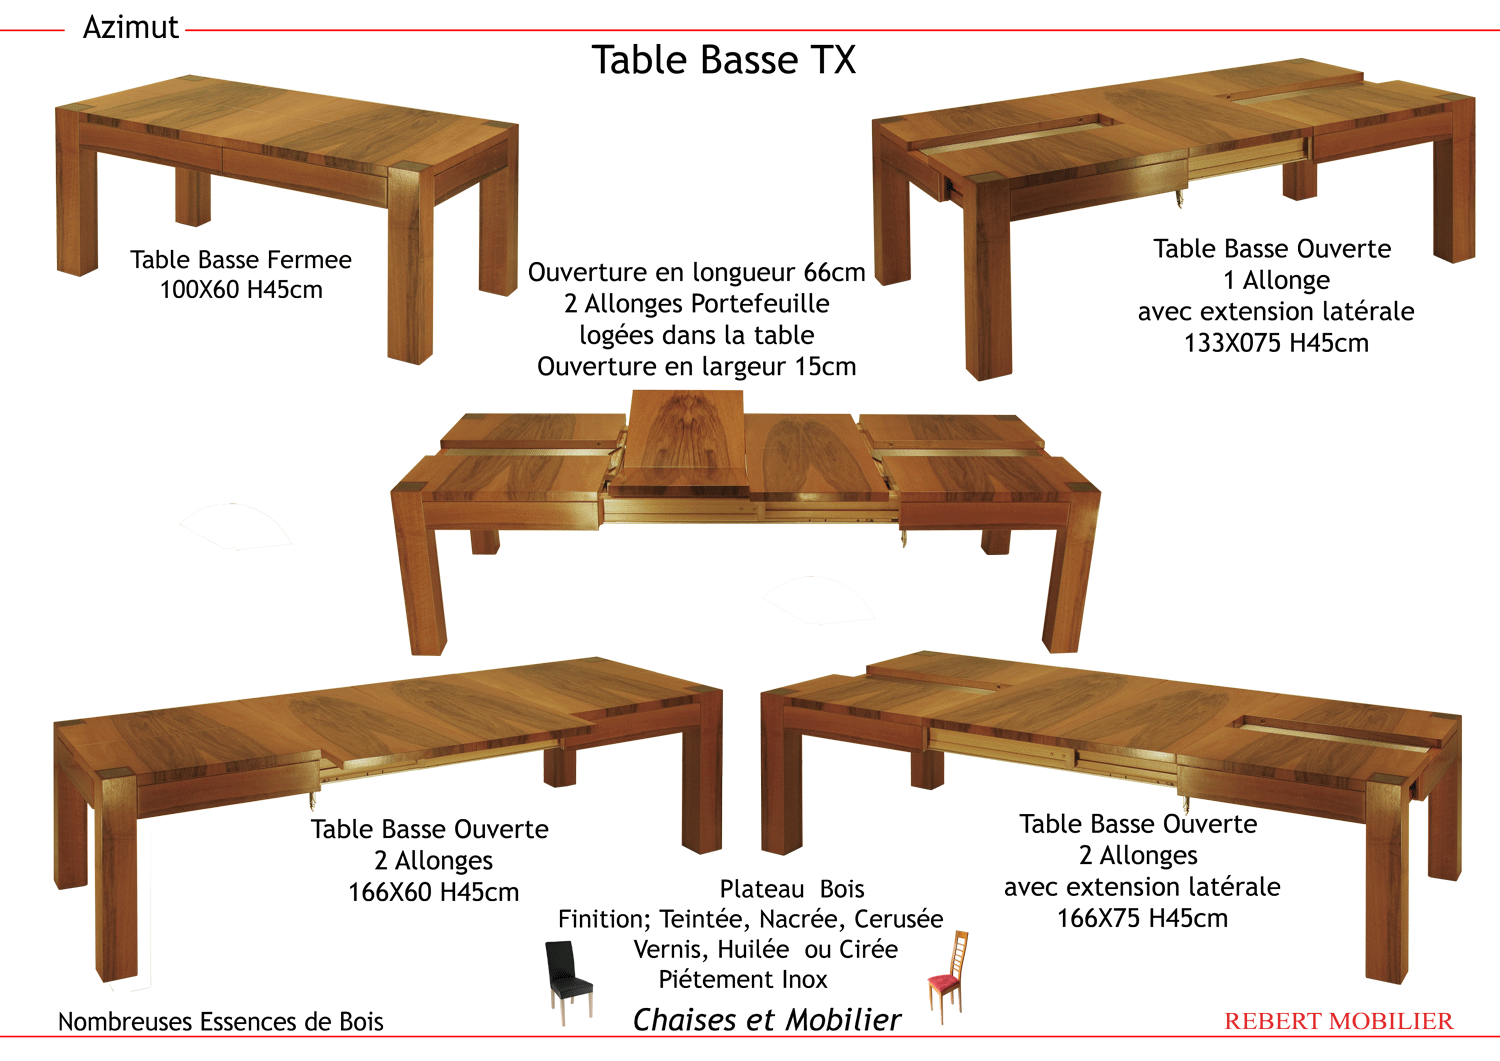 Table basse TX